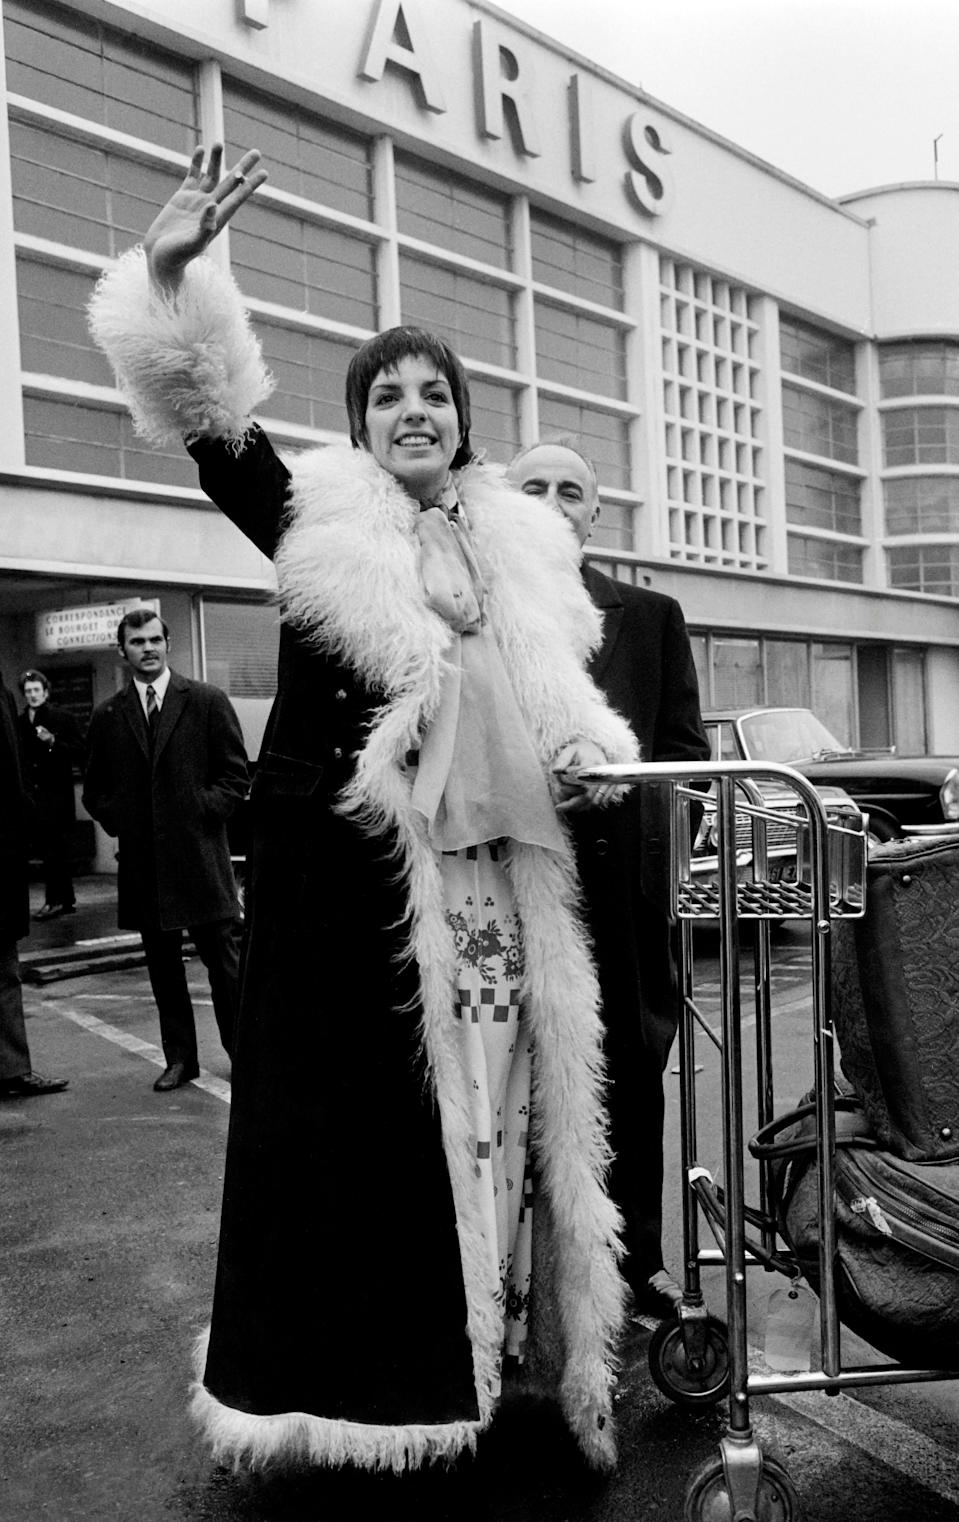 Minnelli arriving at Le Bourget airport, France, 2 December 1969